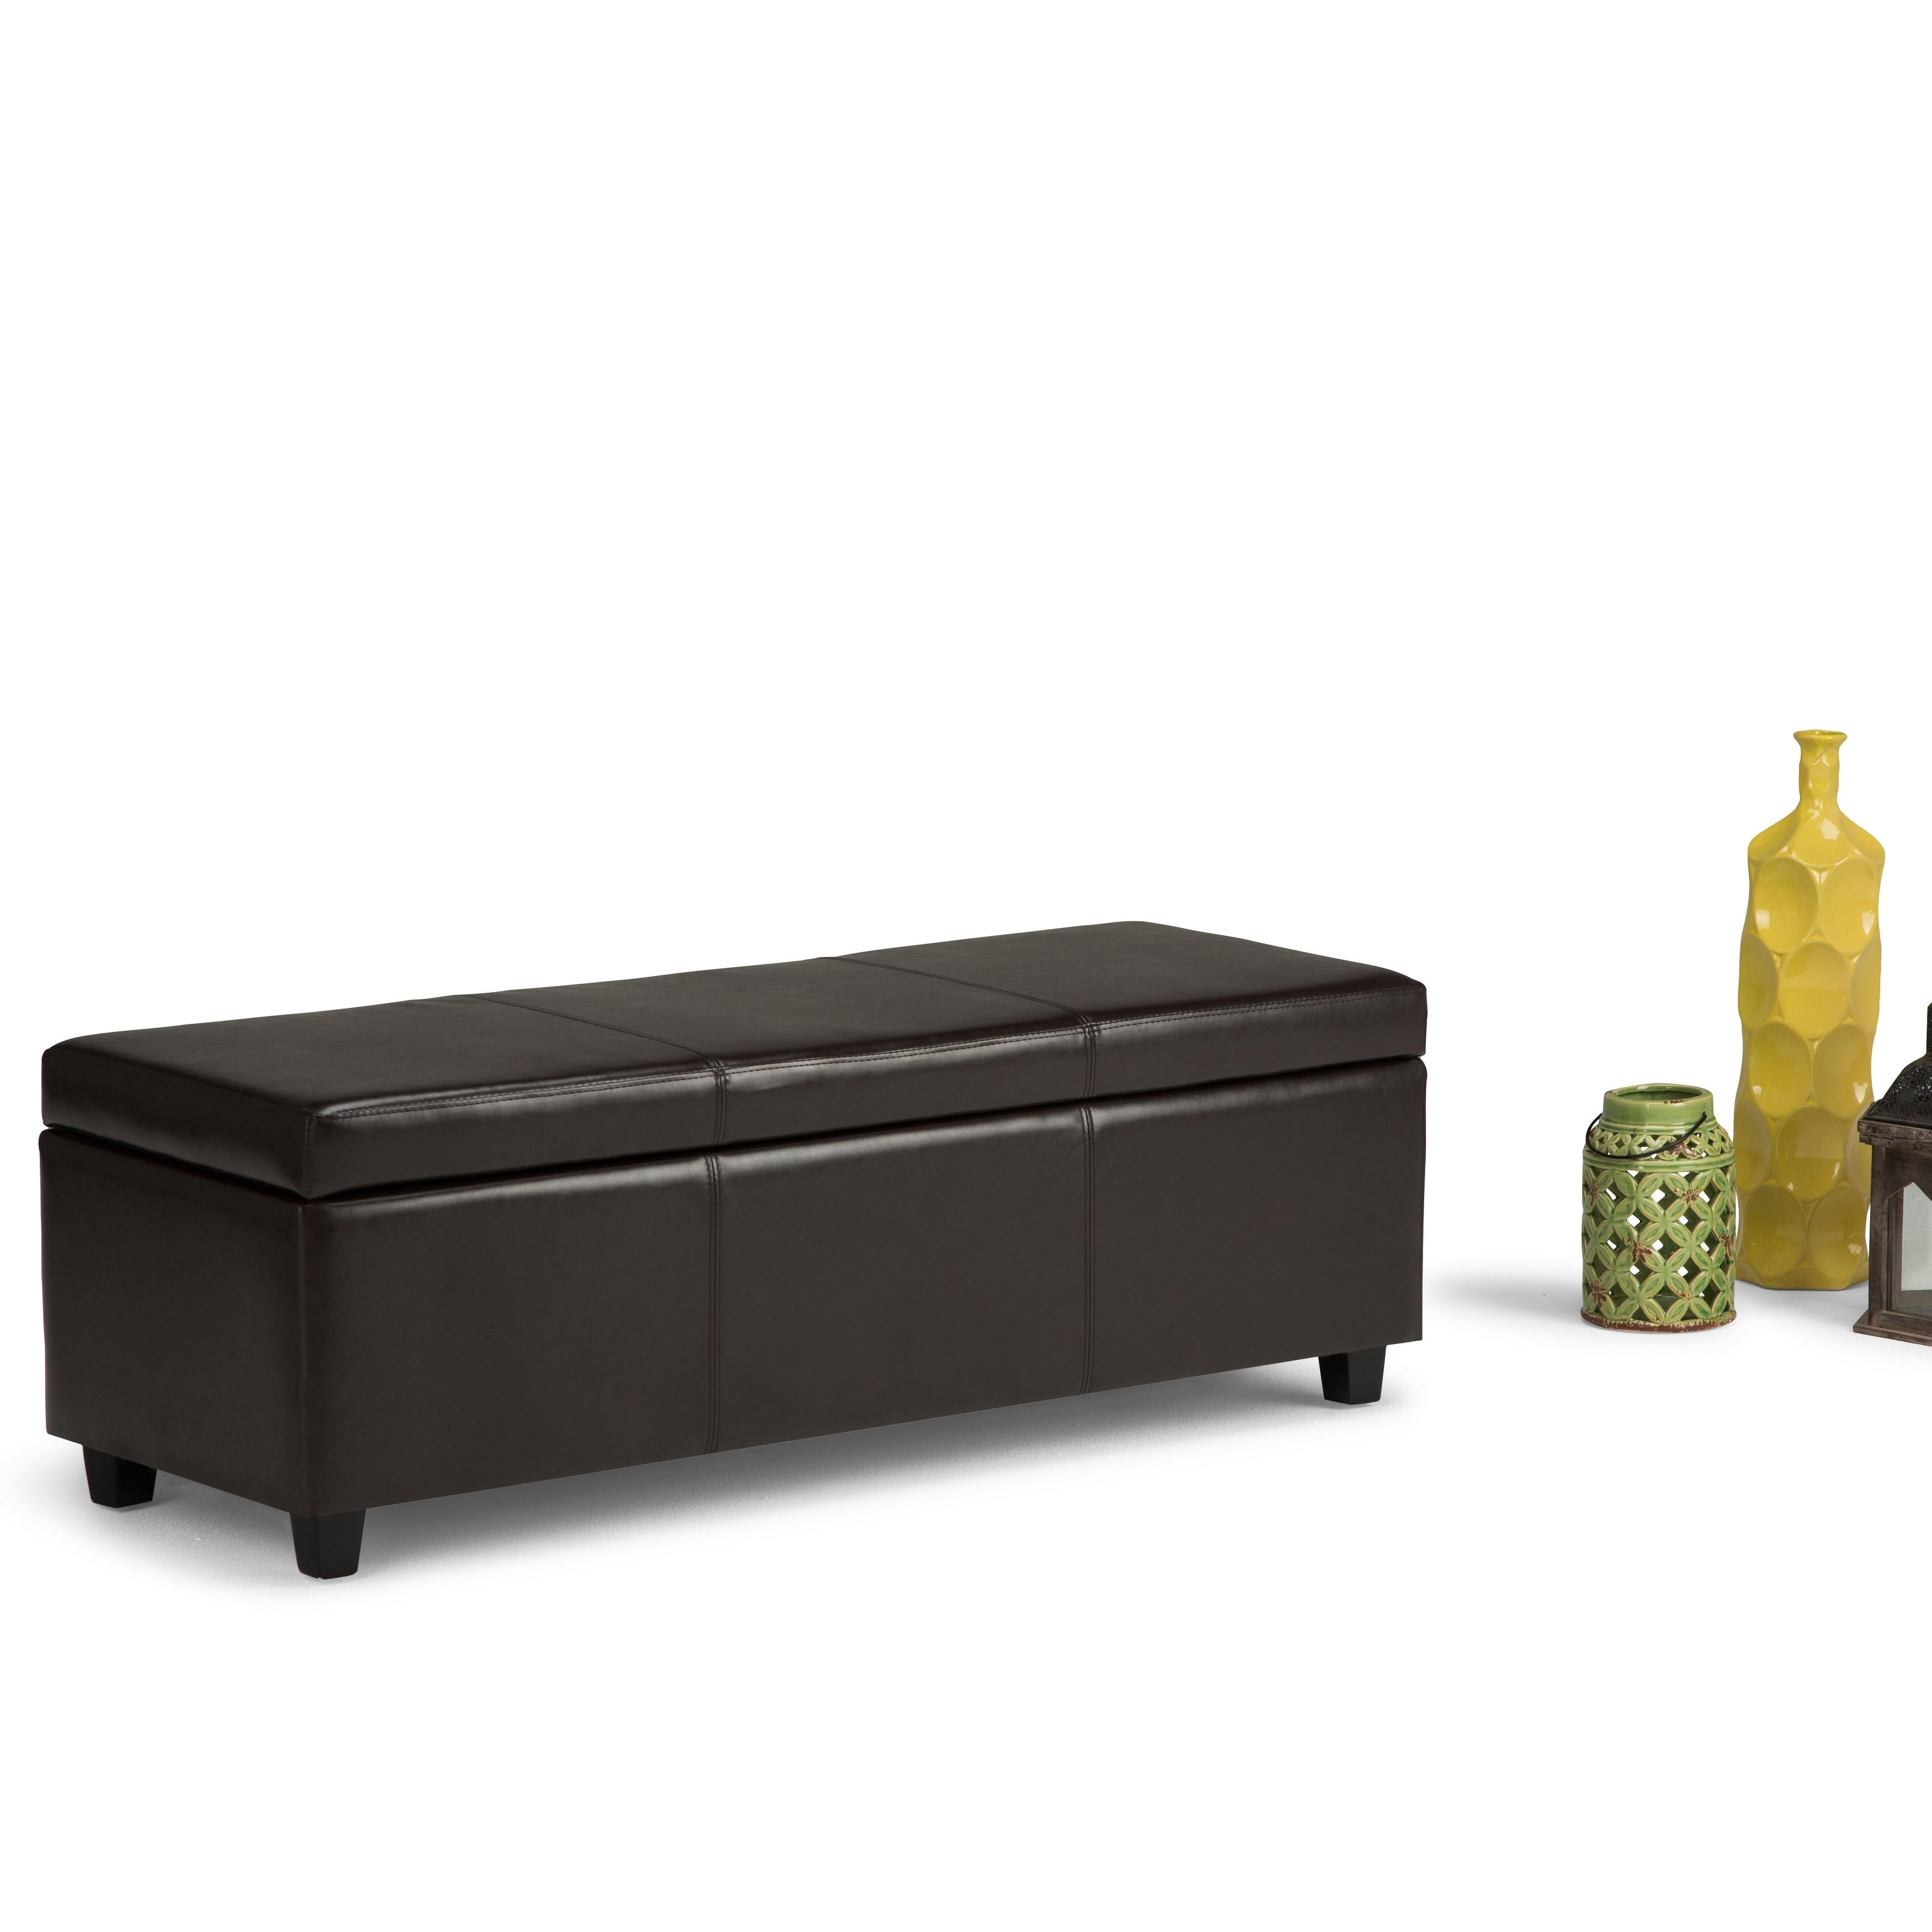 WyndenHall Franklin Large Rectangular Faux Leather Storage Ottoman Bench at Sears.com